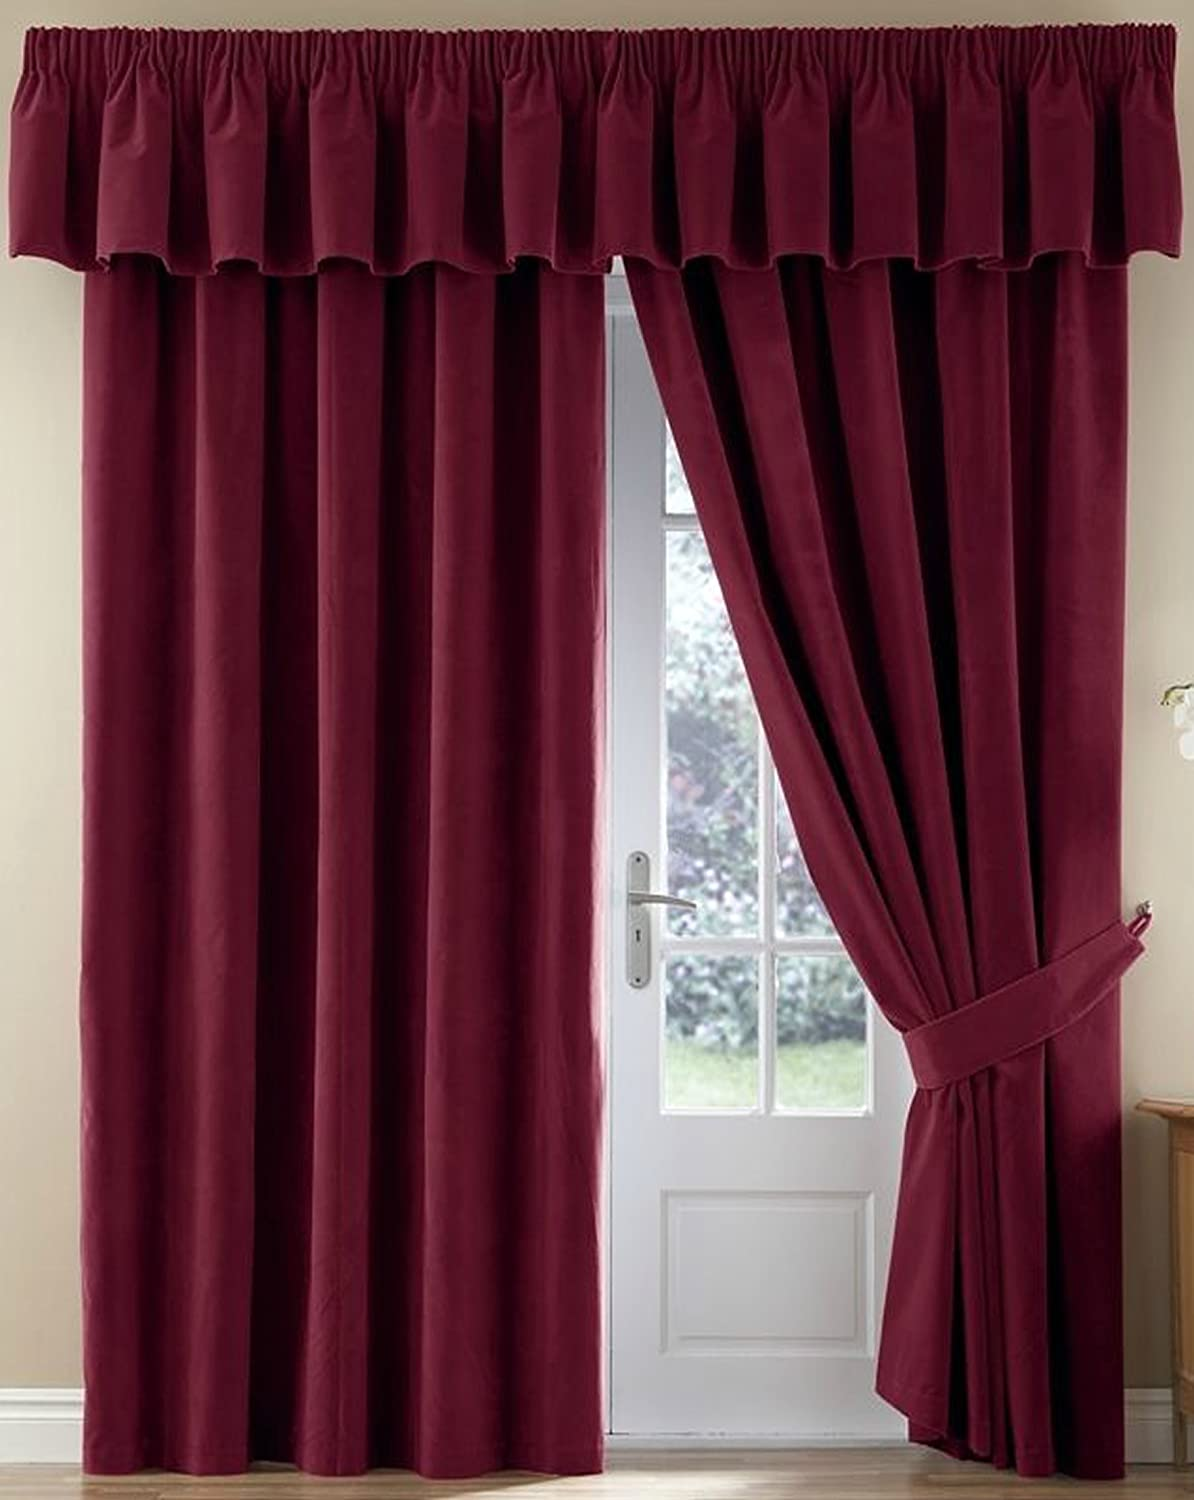 curtains for extra online grommet quick view bedroom curtain velvet blackout heading wide inch whitney made custom brown tab top